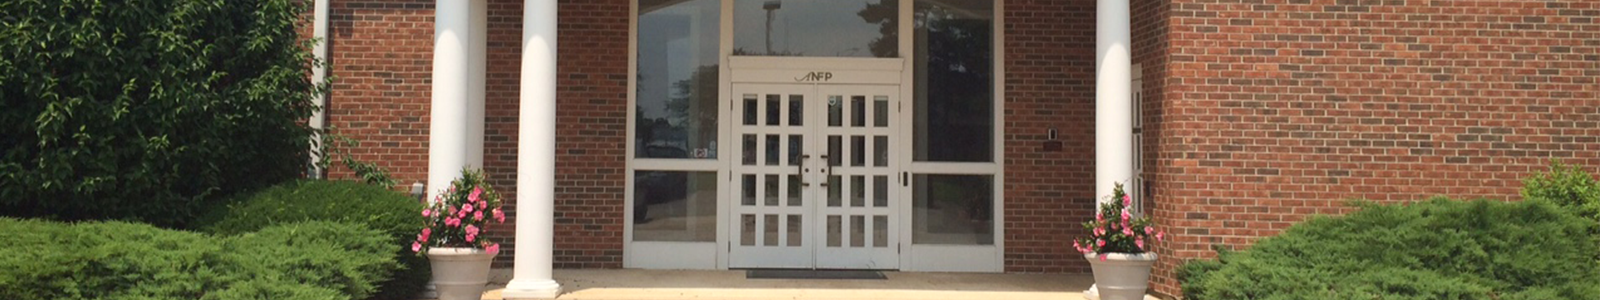 ANFP Regional Office